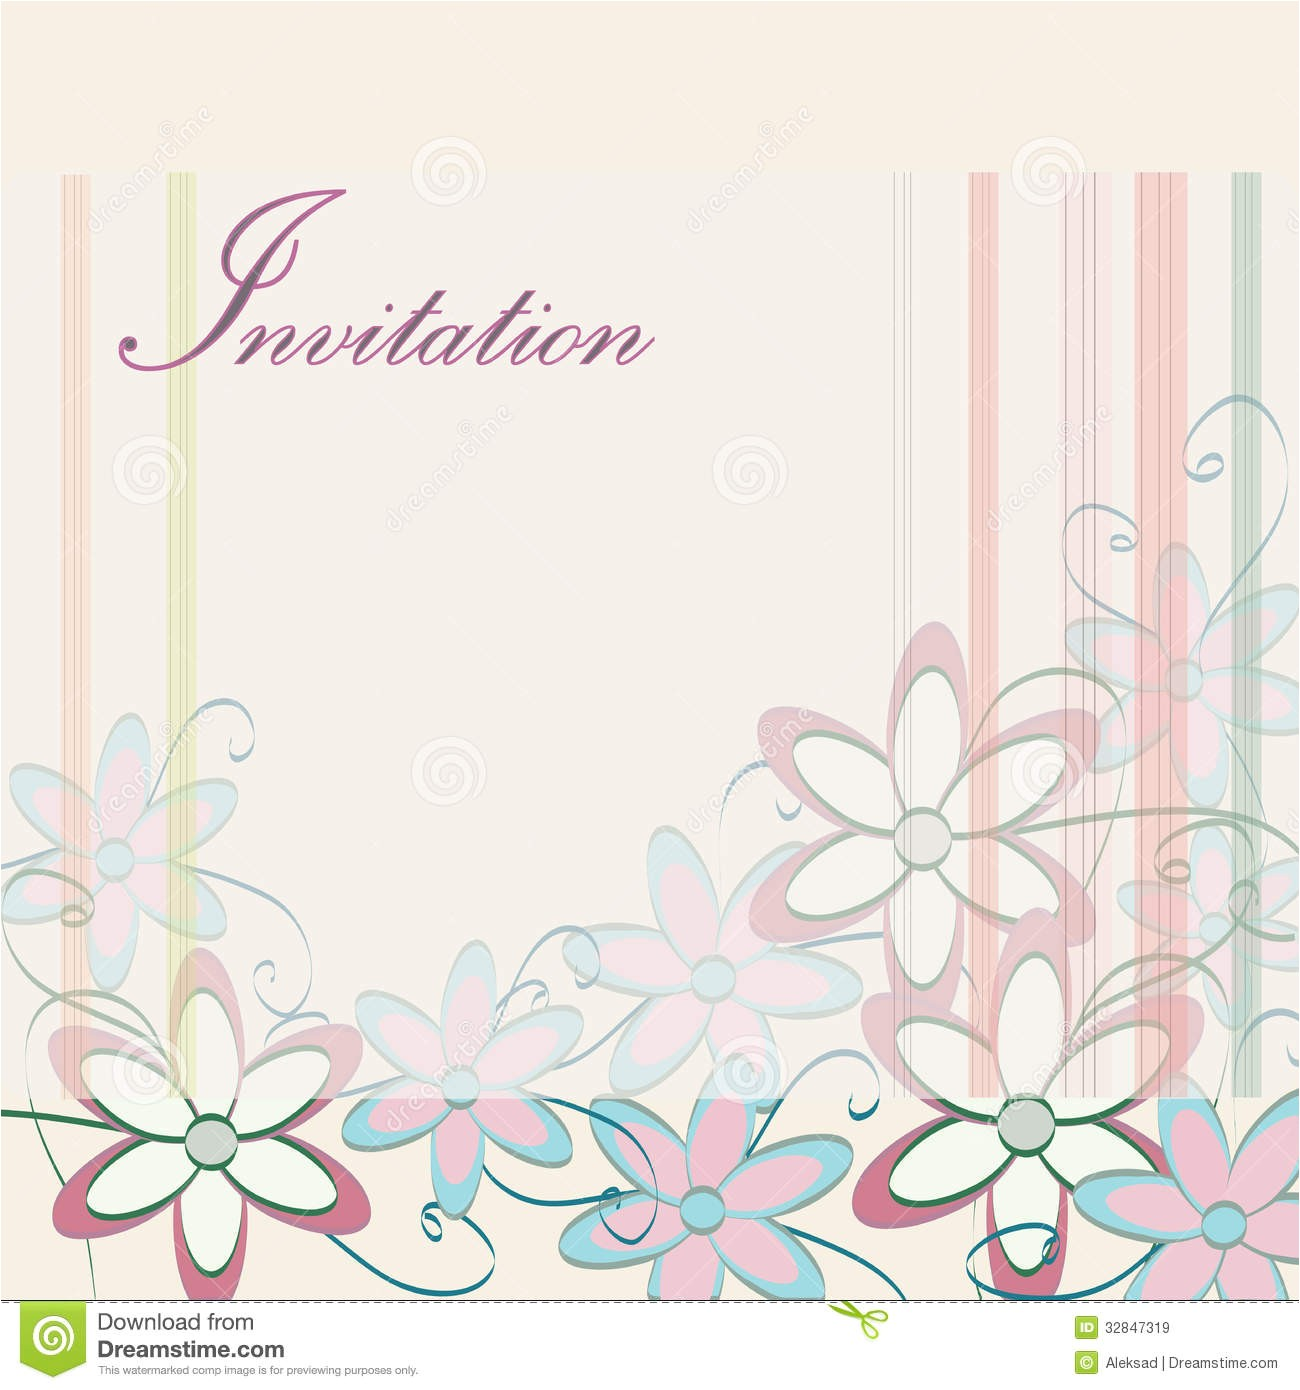 royalty free stock images wedding invitation template party card design flowers stripes image32847319